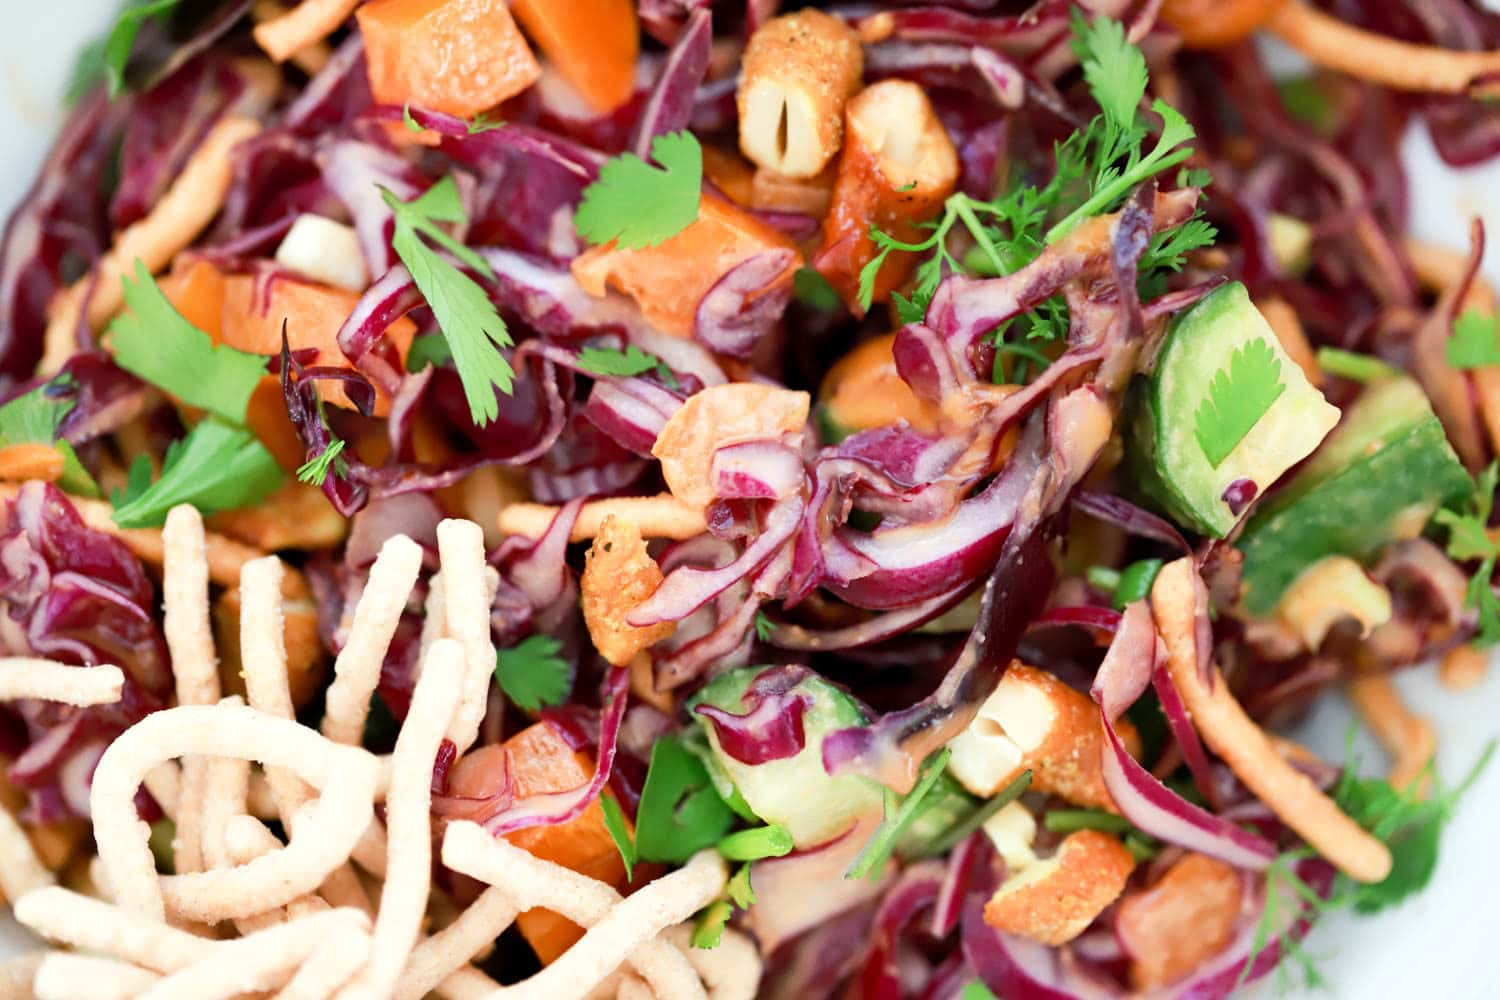 Spicy Peanut Sauce with red cabbage chopped salad. Perfect for meal prepping!